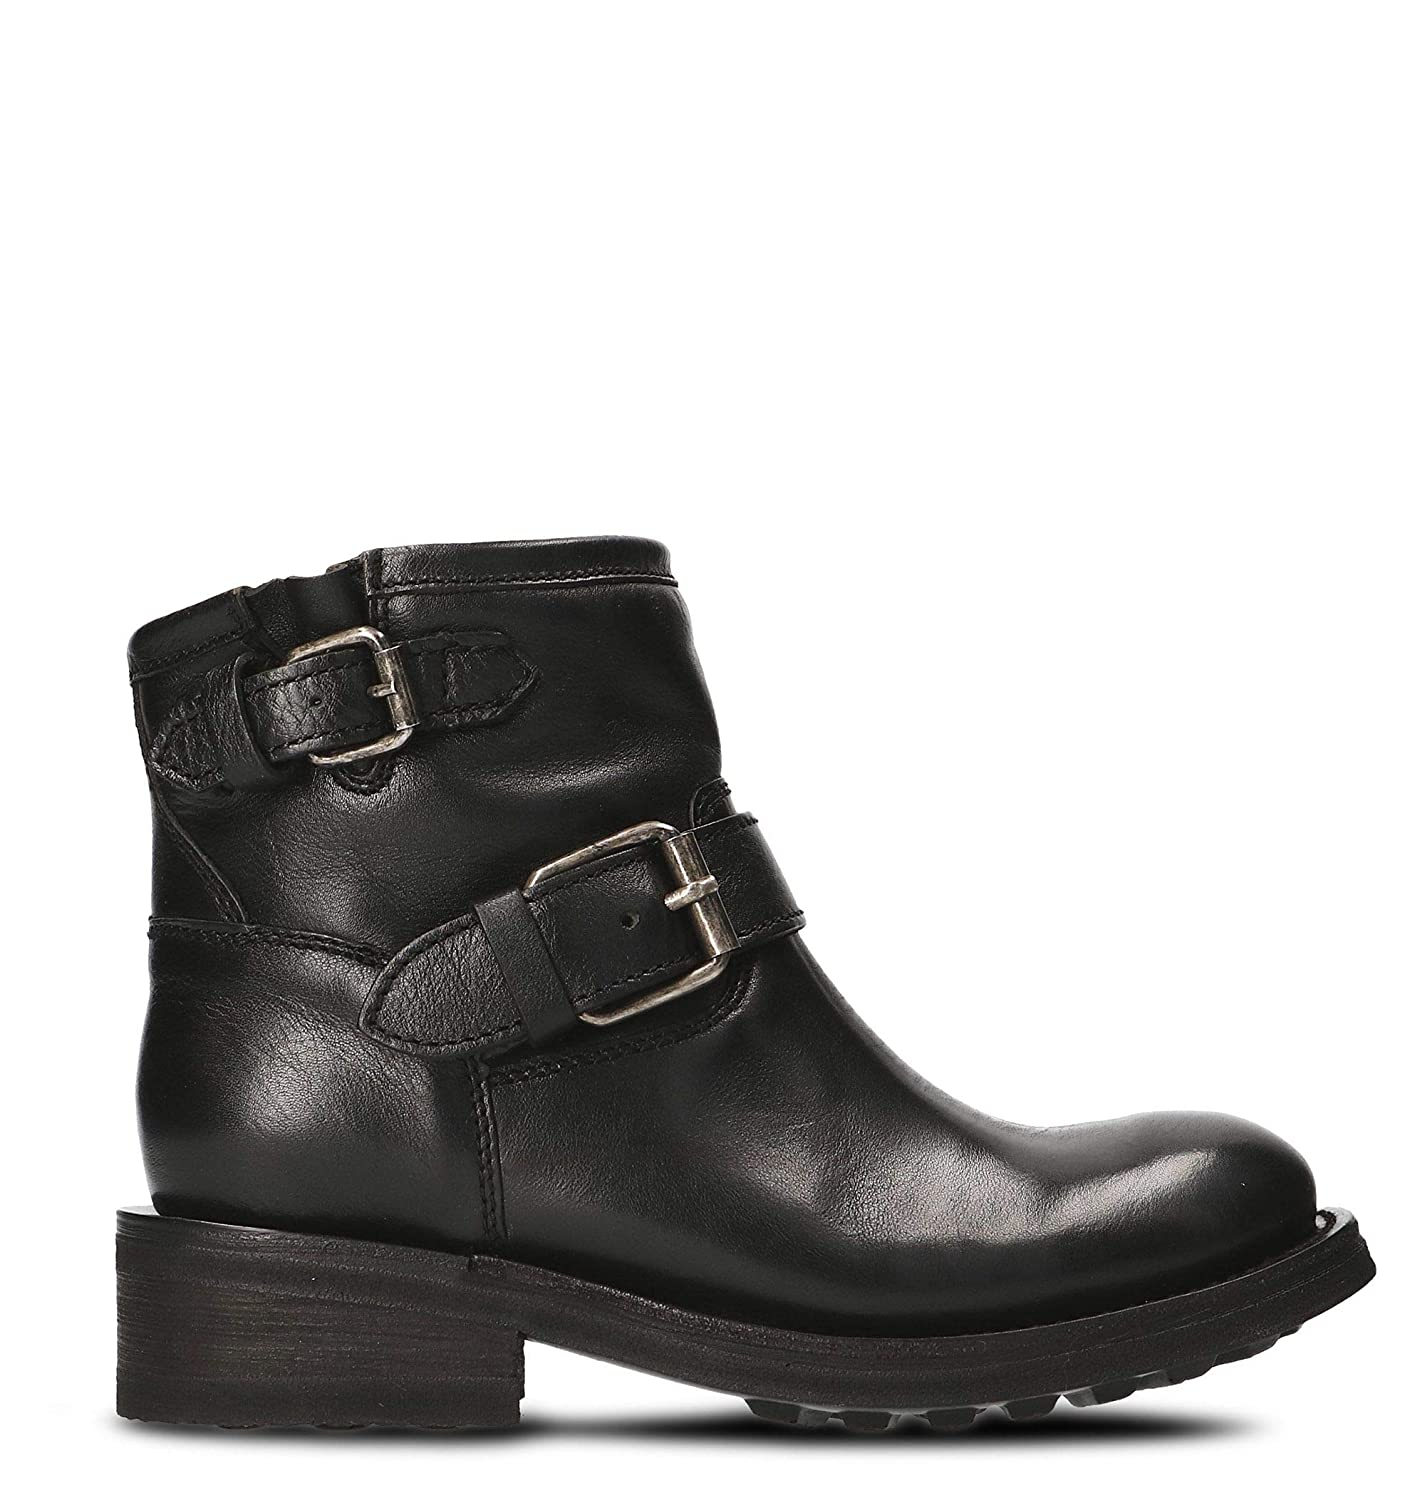 - Ash Women's TRICK01 Black Leather Ankle Boots